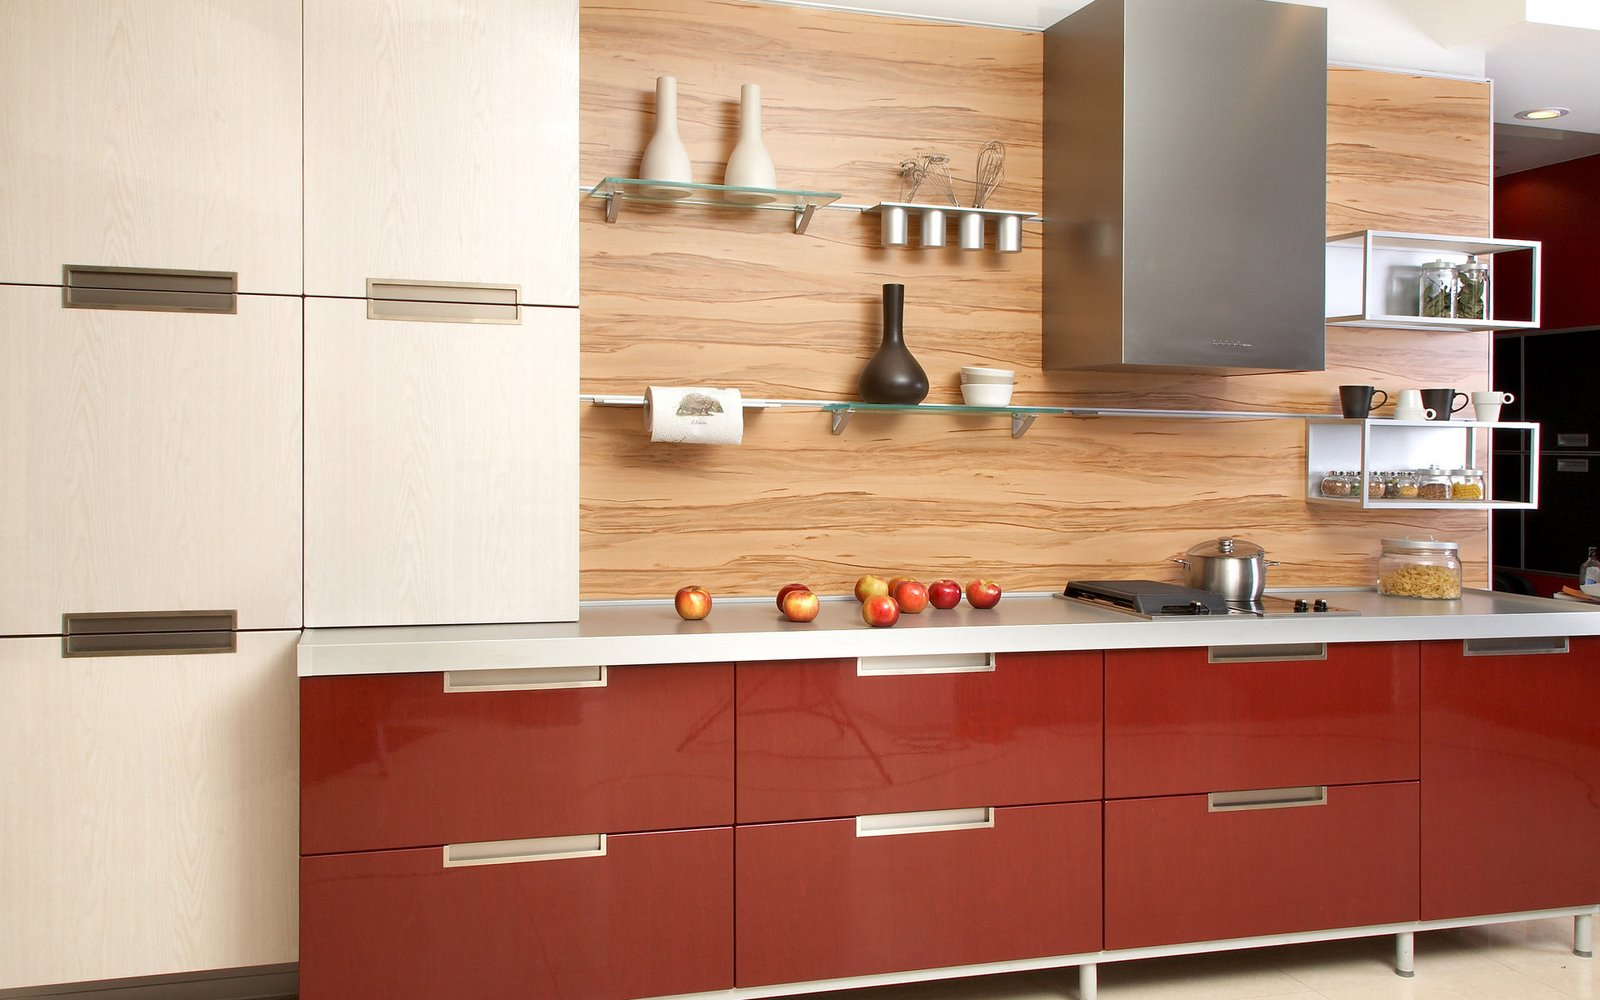 Modern kitchen shelves - Glossy Red Kitchen Cabinet Glass Floating Shelves Italian Kitchen Design Image 3 Of 8